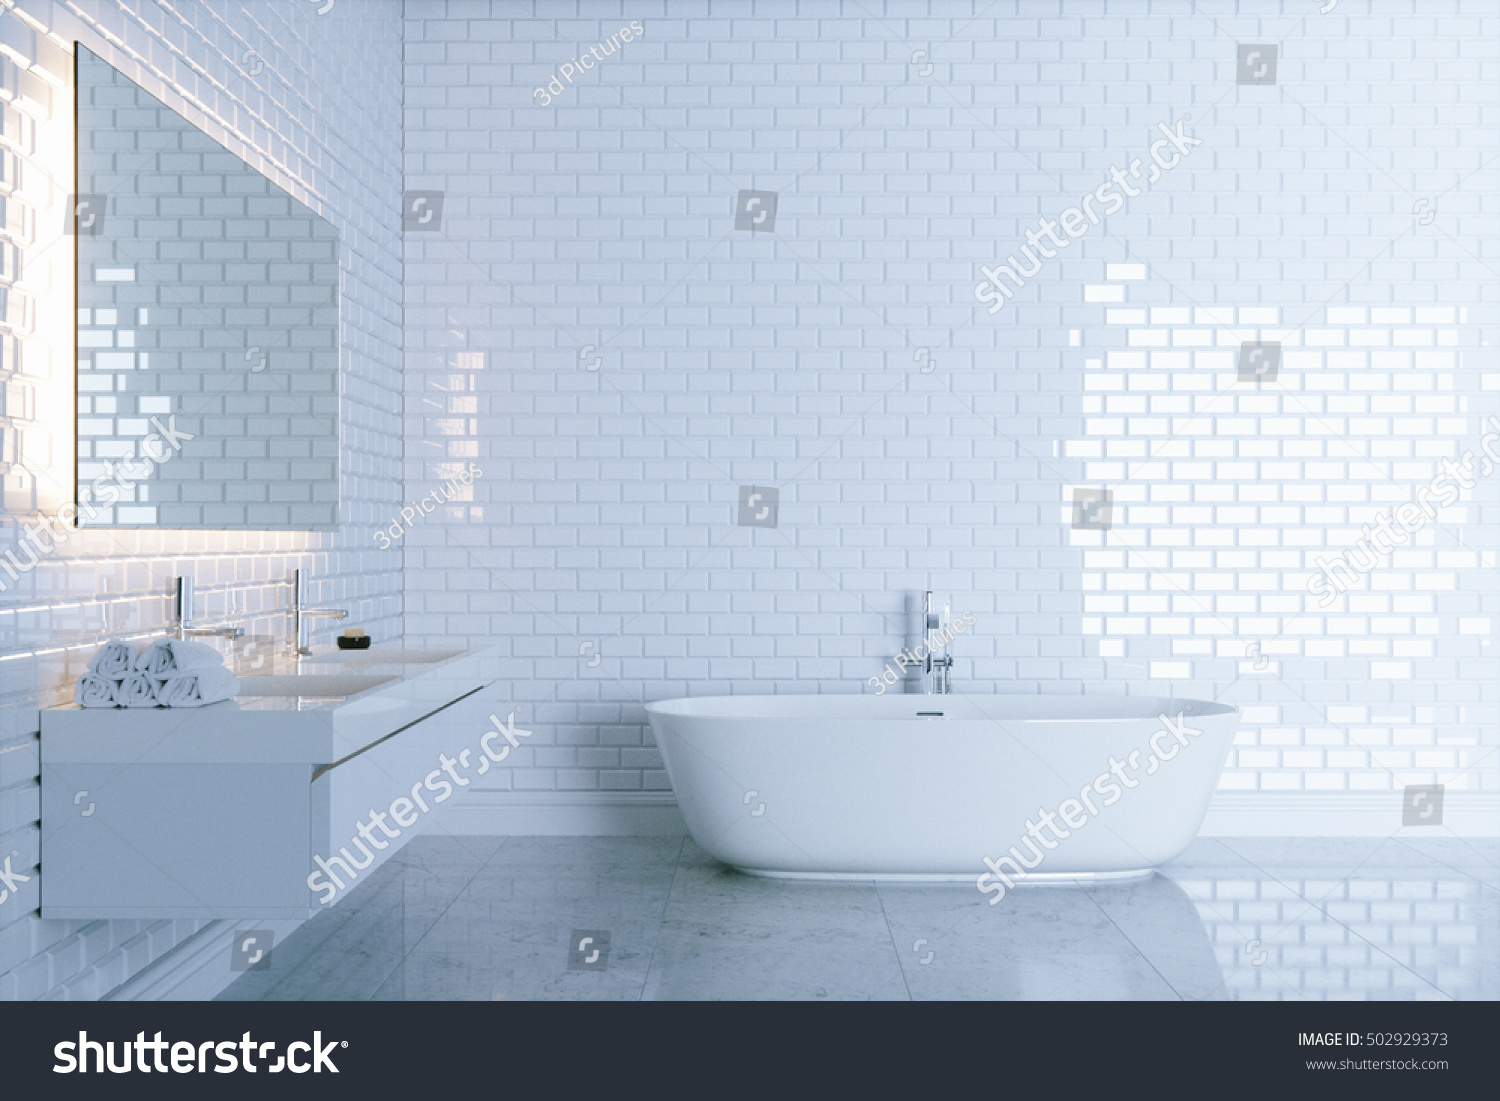 New White Bathroom Big Ceramic Bathtub Stock Illustration 502929373 ...